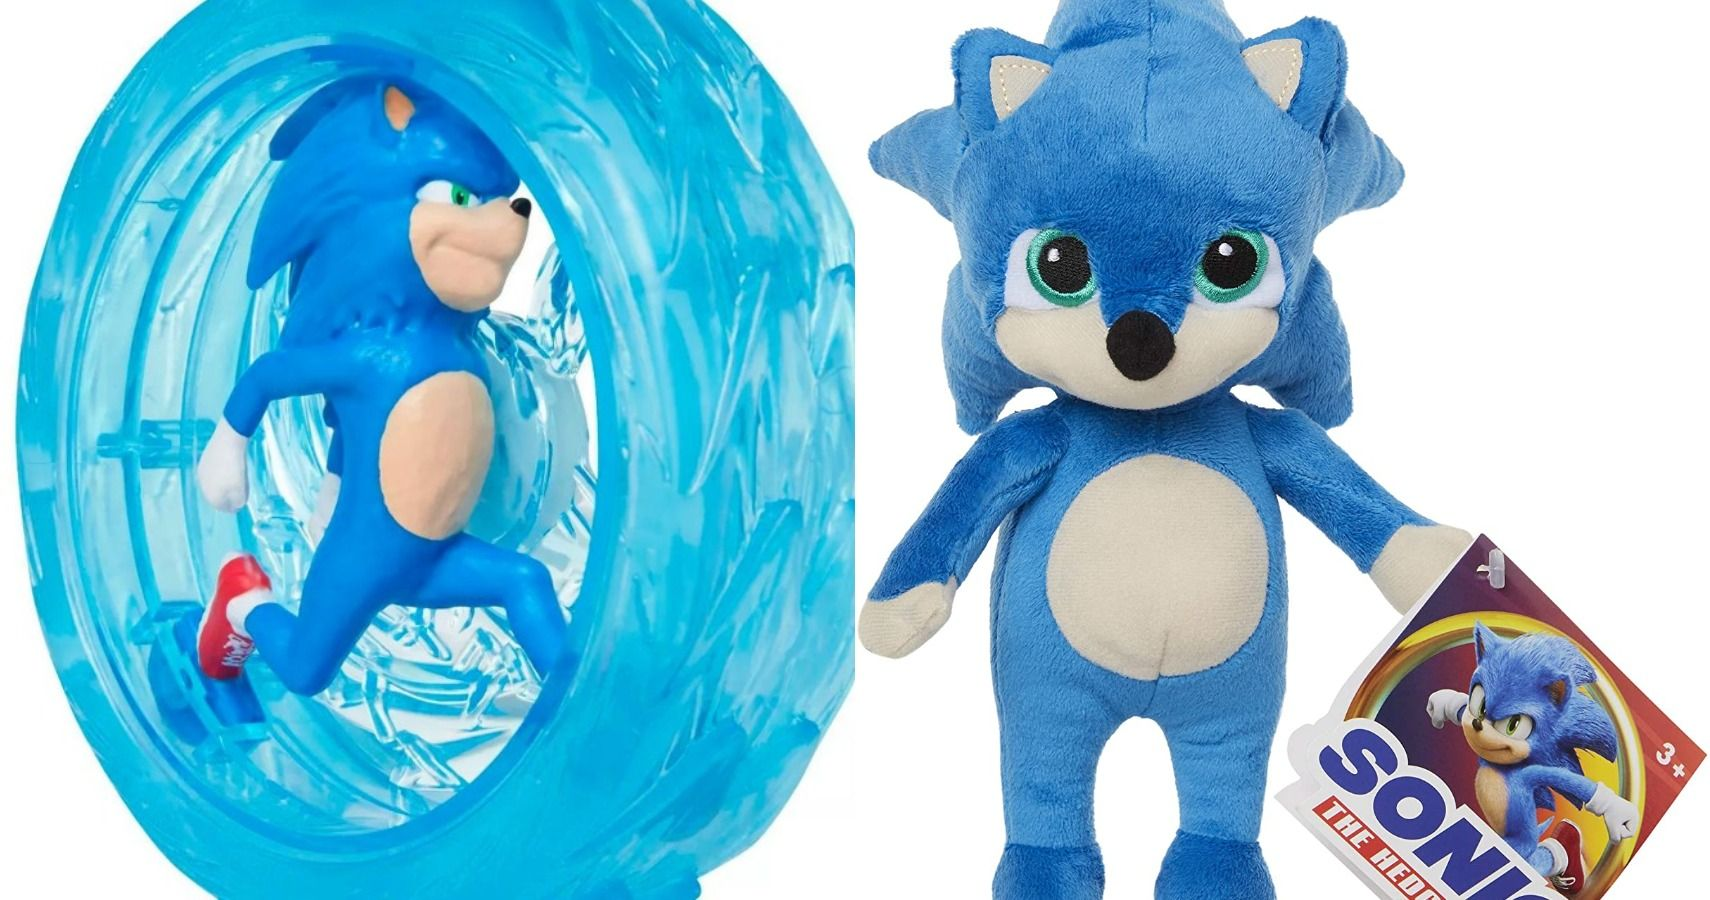 10 Horrifying Sonic The Hedgehog Toys That Give Flashbacks To Before The Redesign